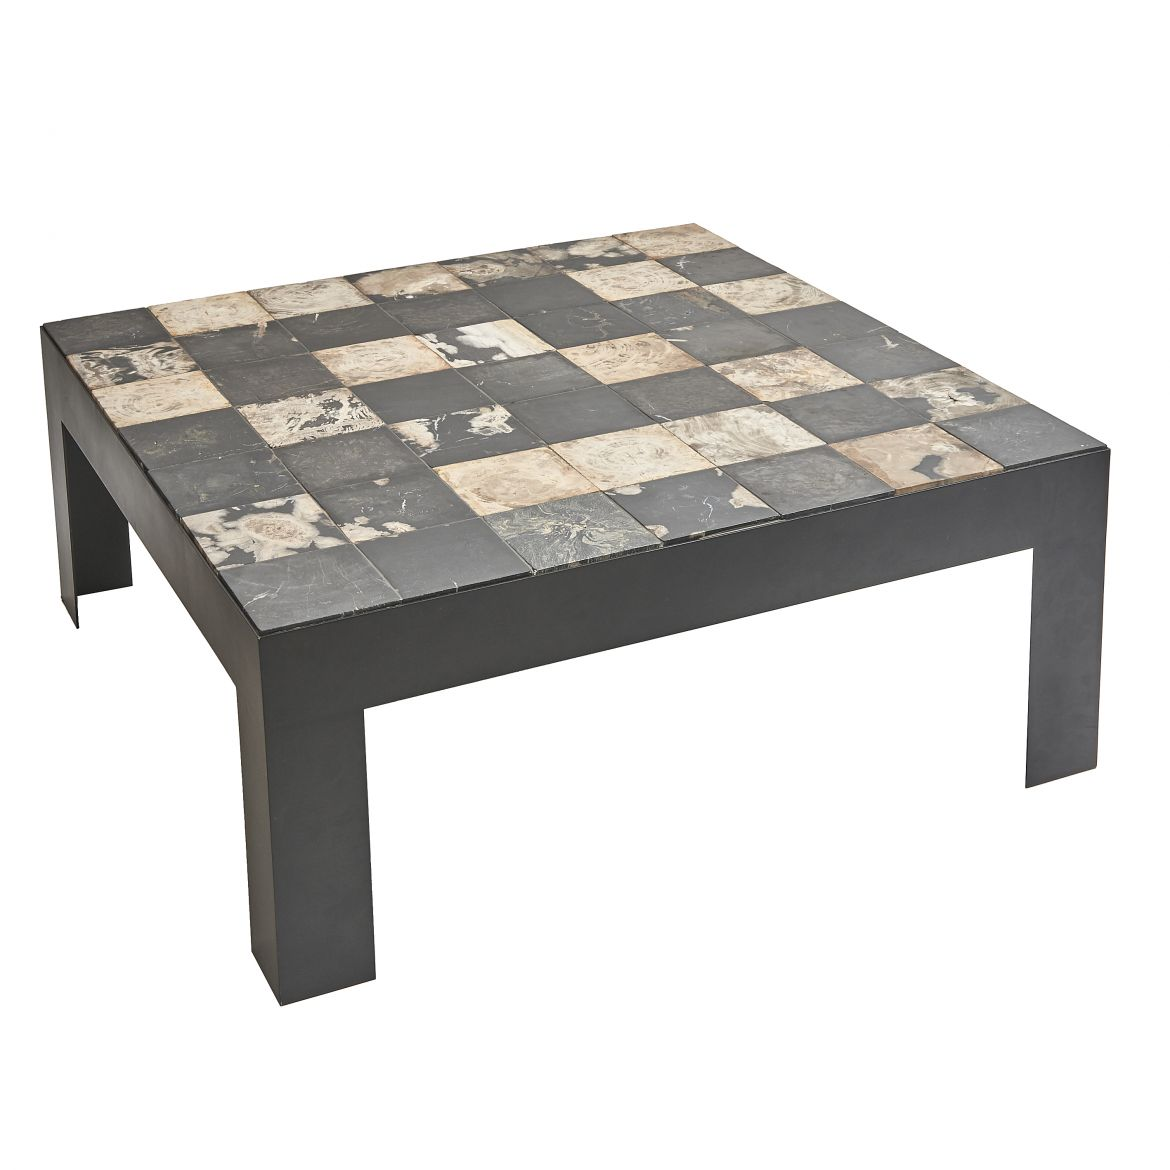 Black & White Tile Coffee Table